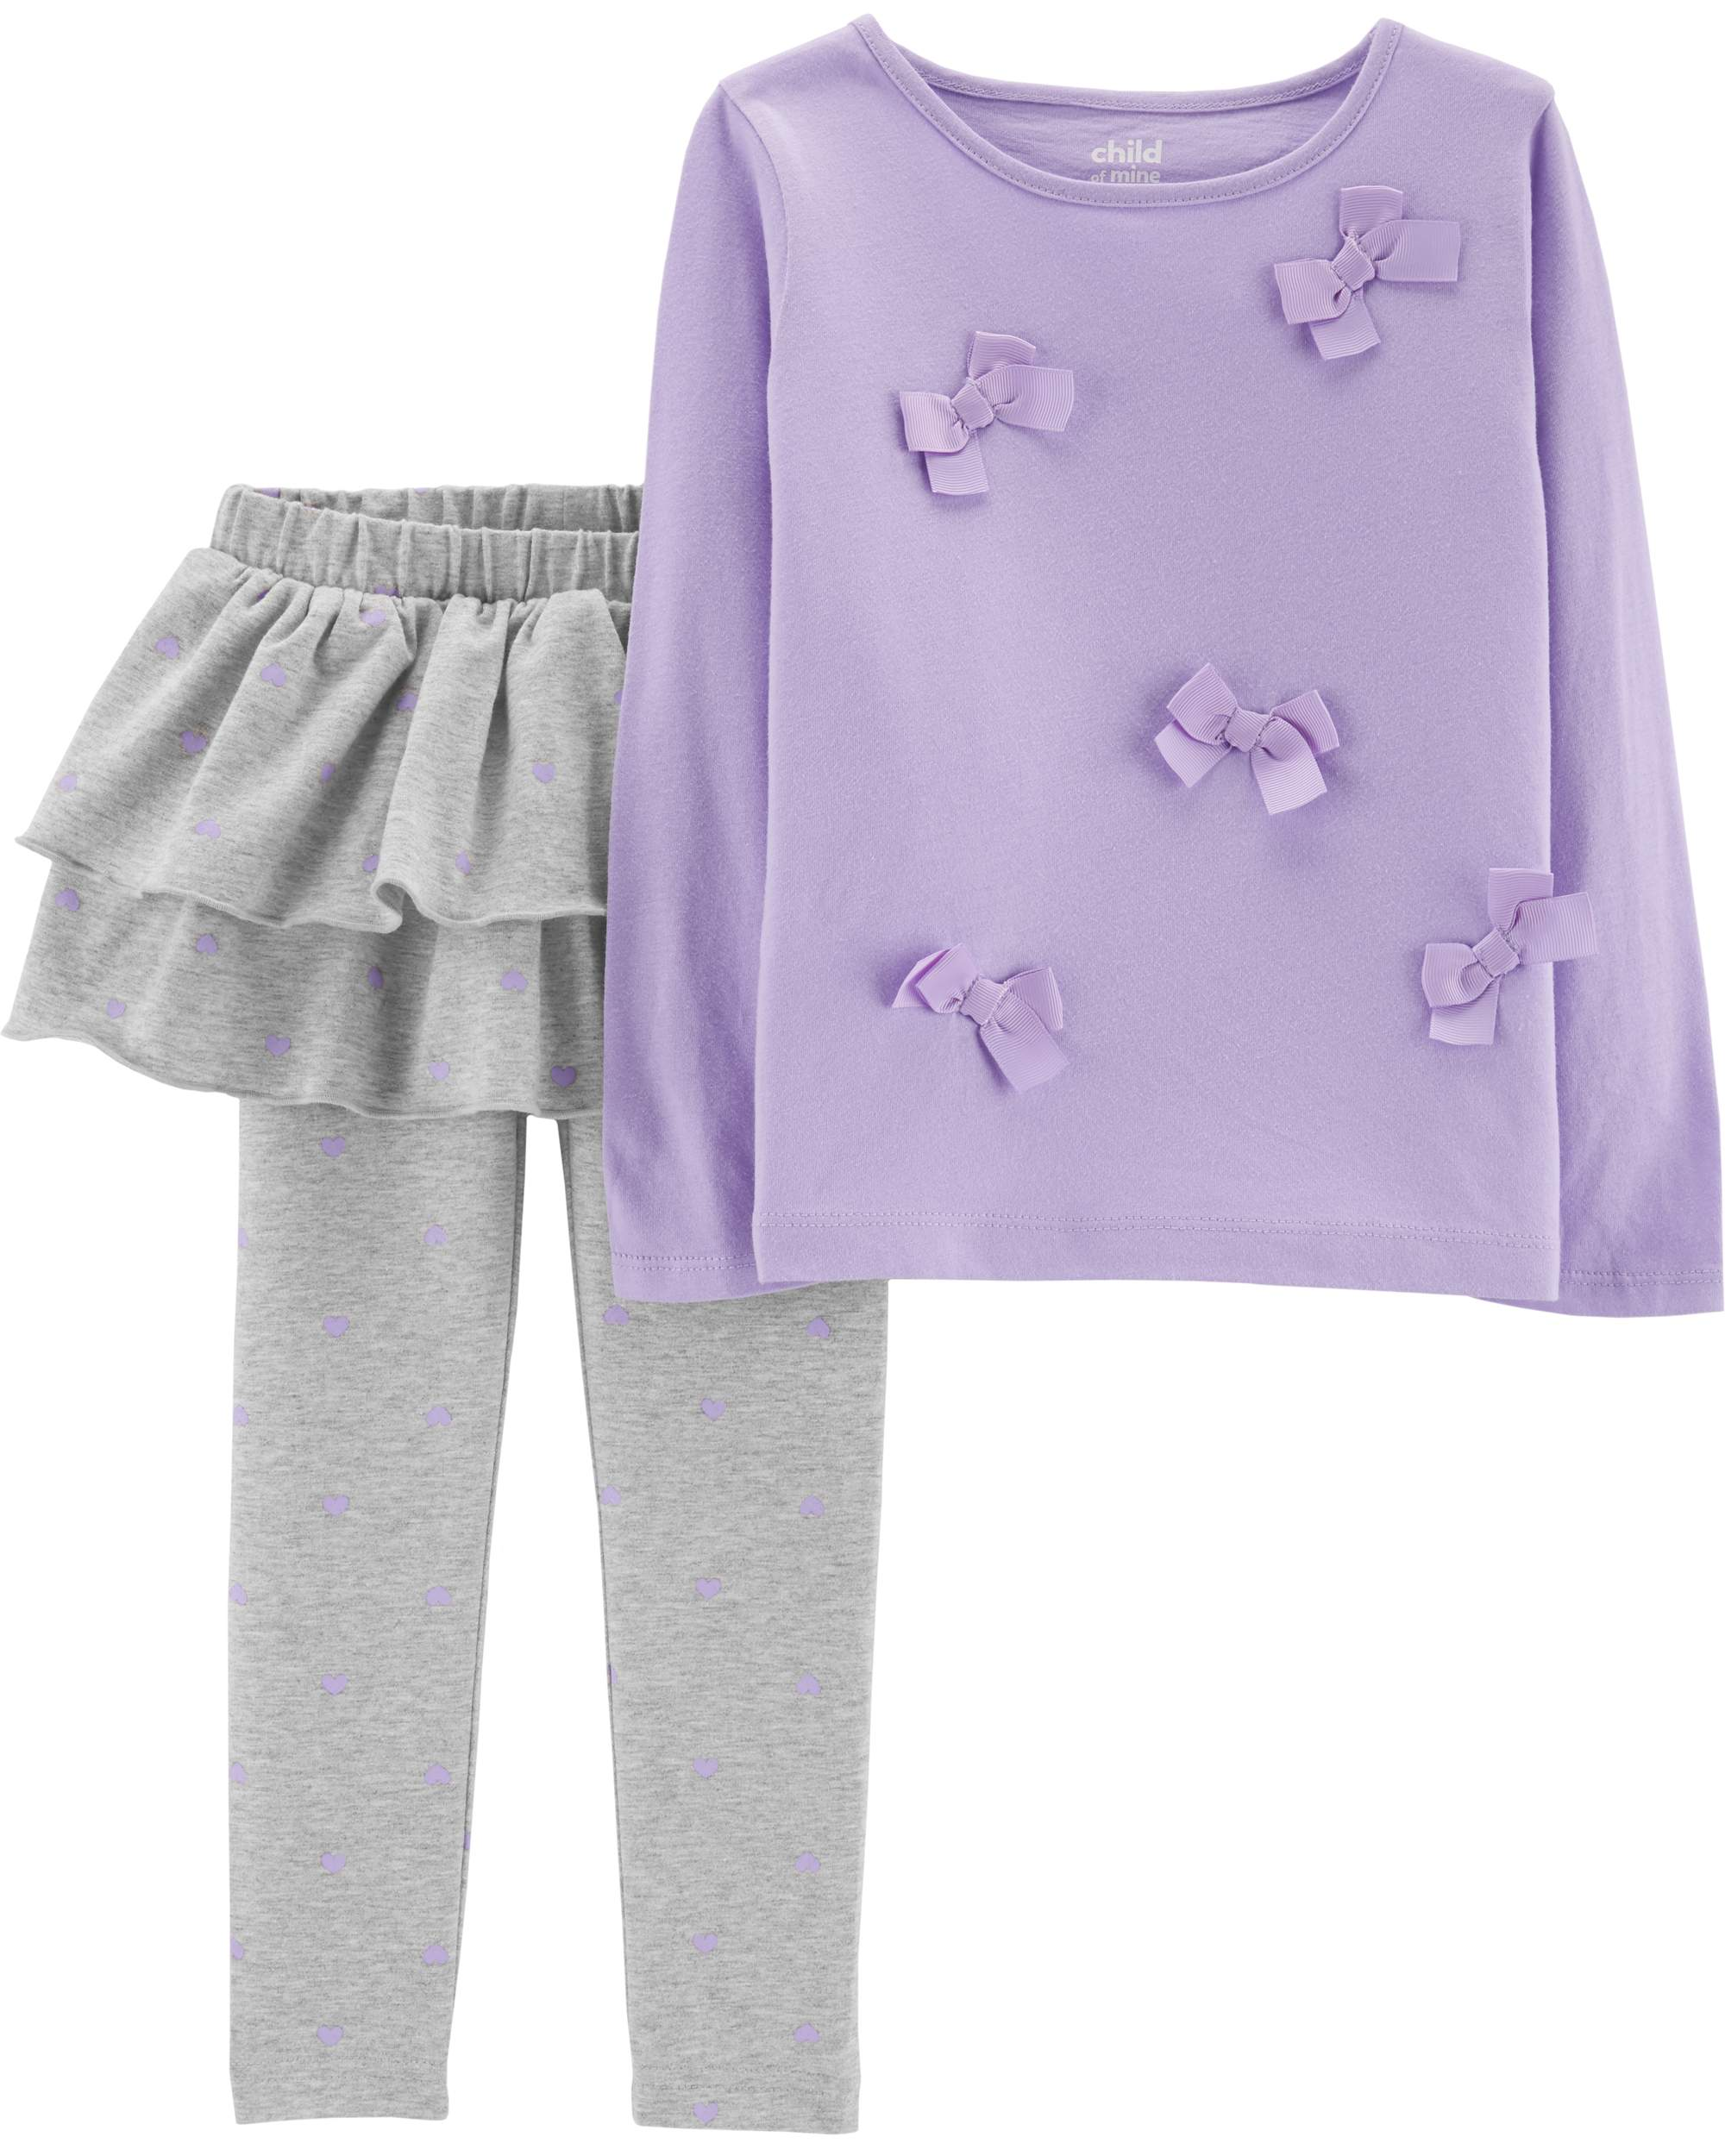 Long Sleeve Bow T-Shirt & Skeggings, 2-Piece Outfit Set (Toddler Girls)